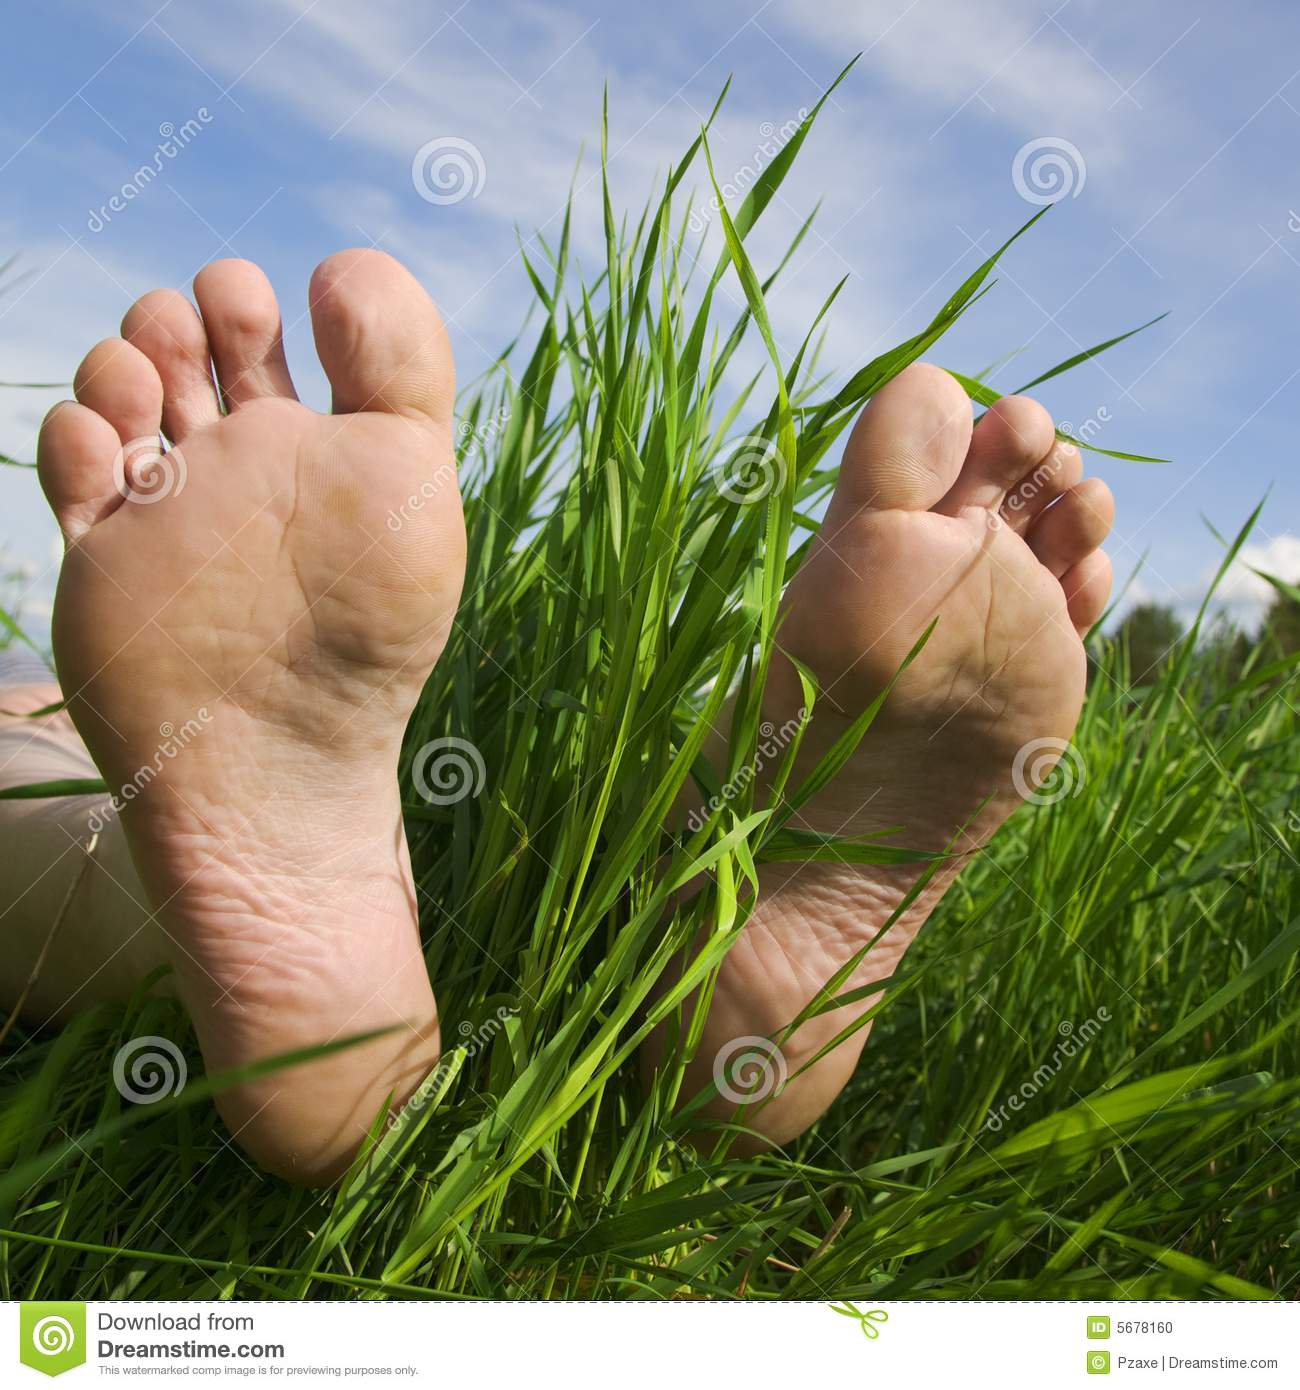 barefooted a foot in a years grass mr no pr no 3 961 6